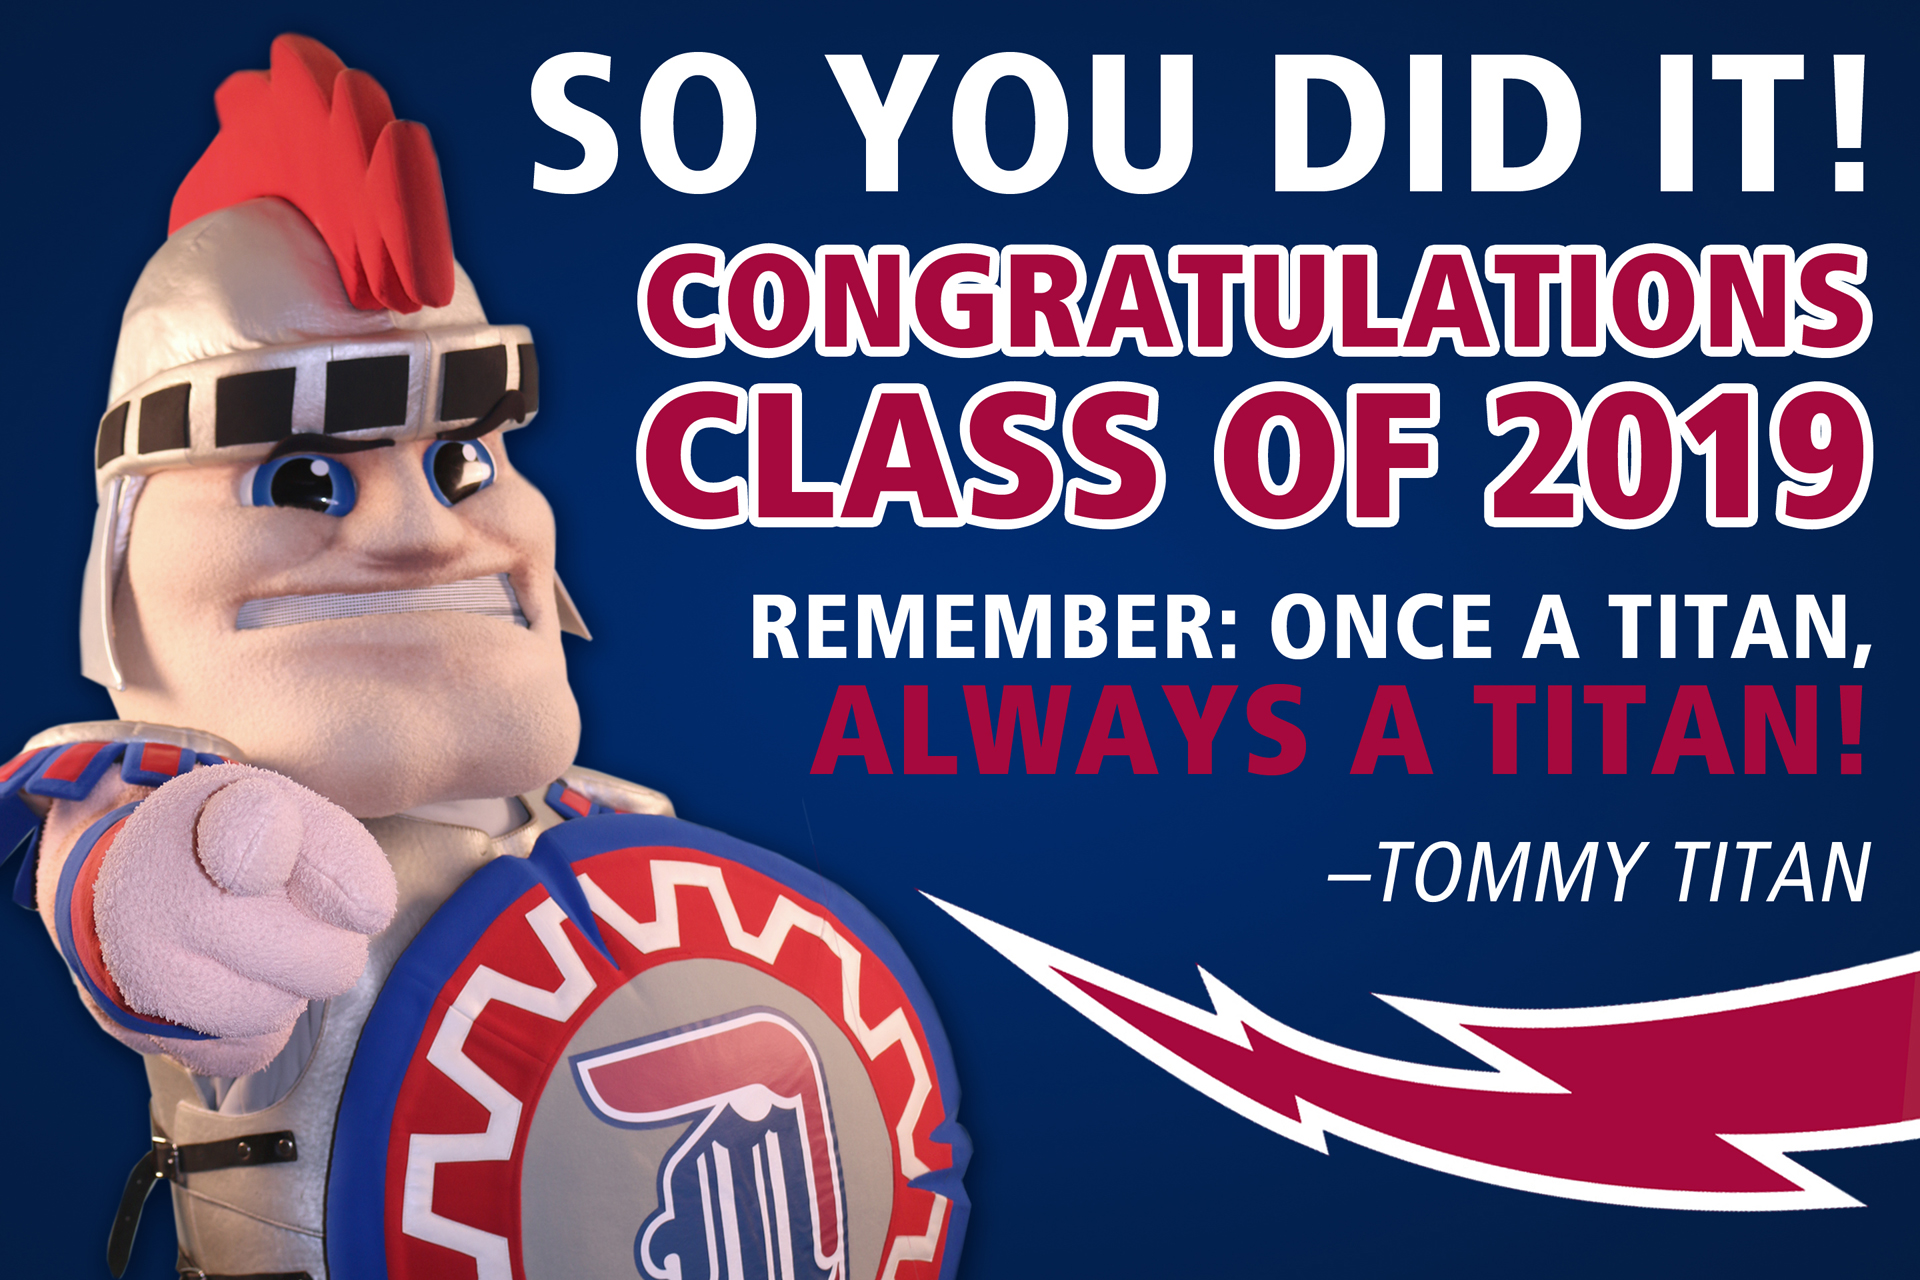 Tommy Titan congrats Class of 2019